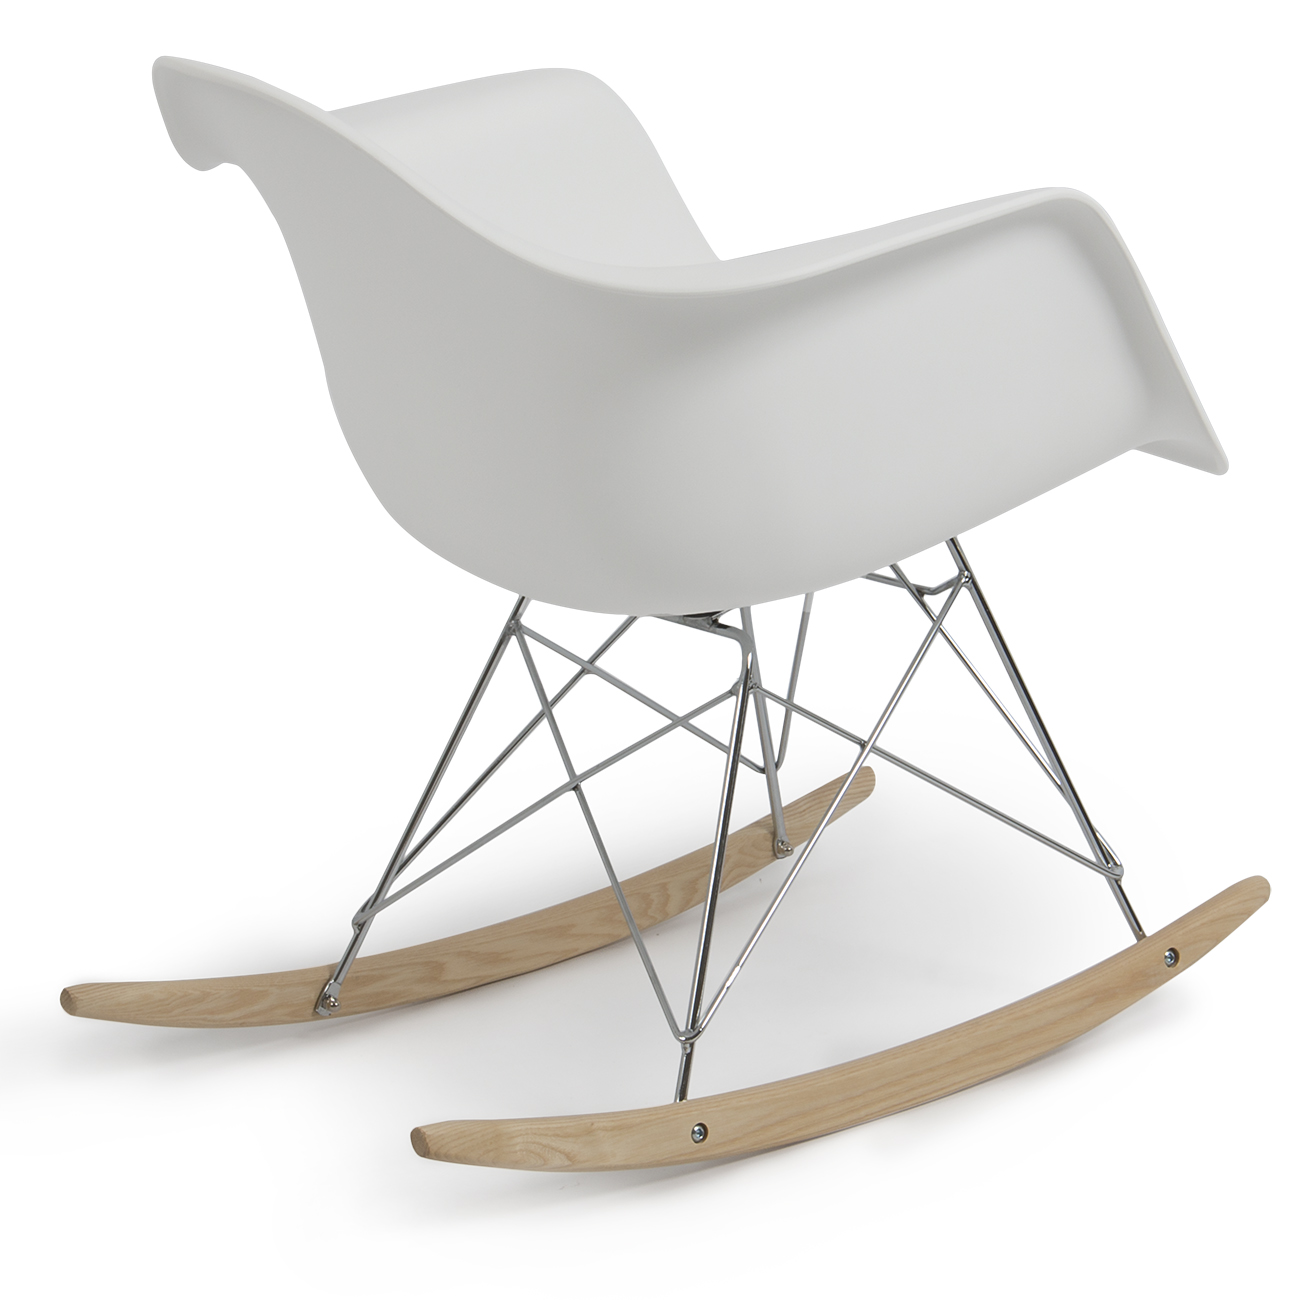 eames rar style mid century modern molded plastic rocking rocker shell arm chair ebay. Black Bedroom Furniture Sets. Home Design Ideas